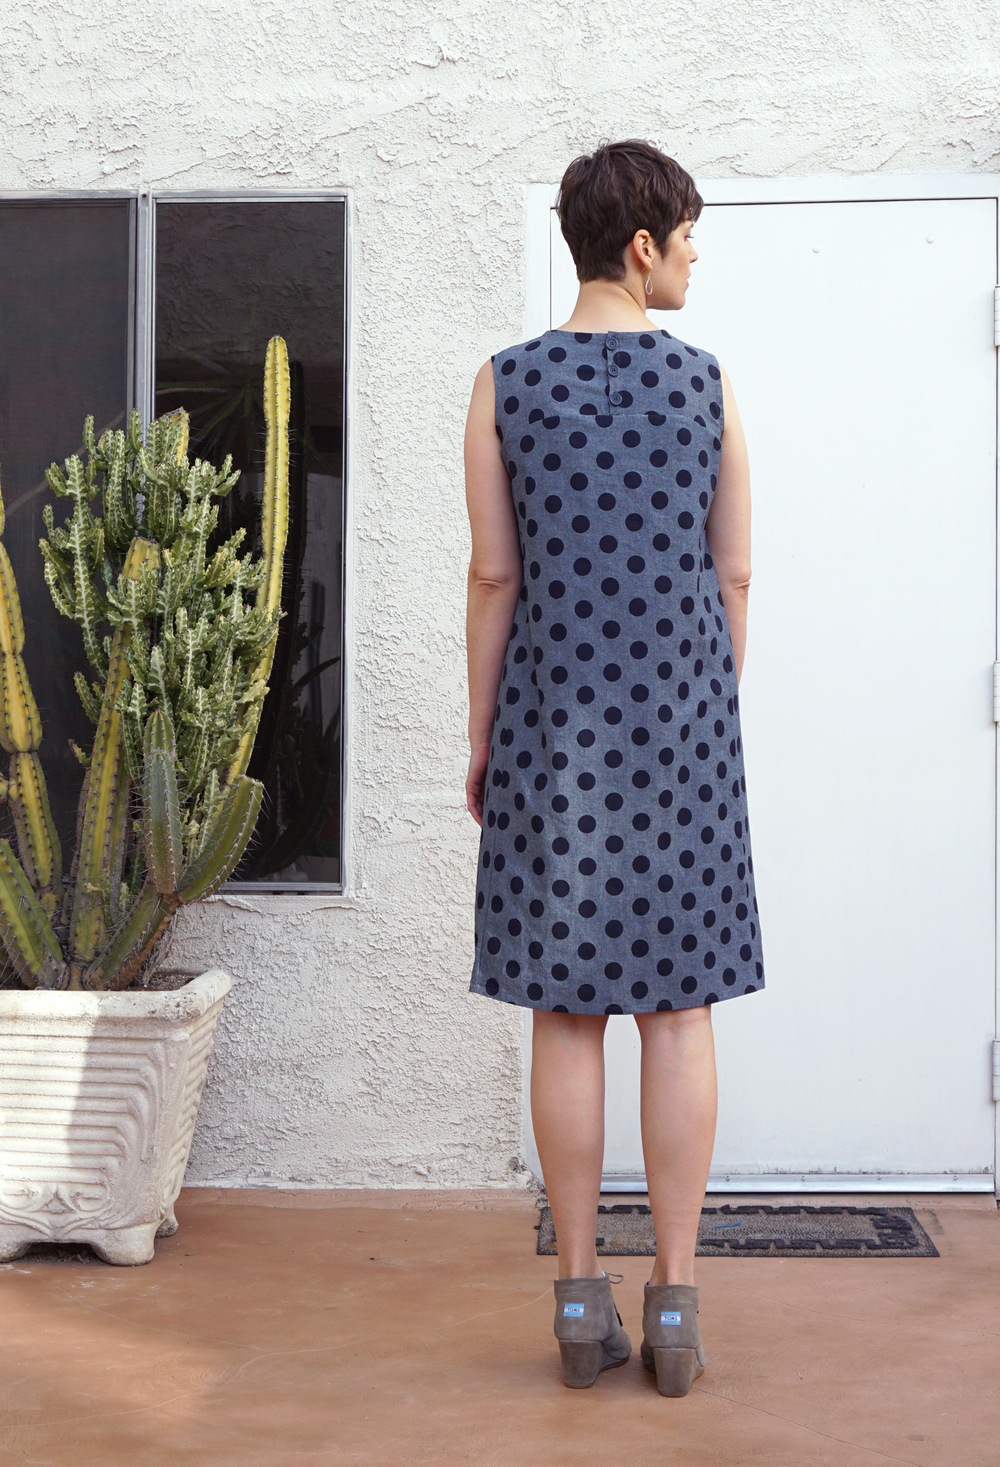 DIY Polka Dot Rushcutter Dress | Sew DIY